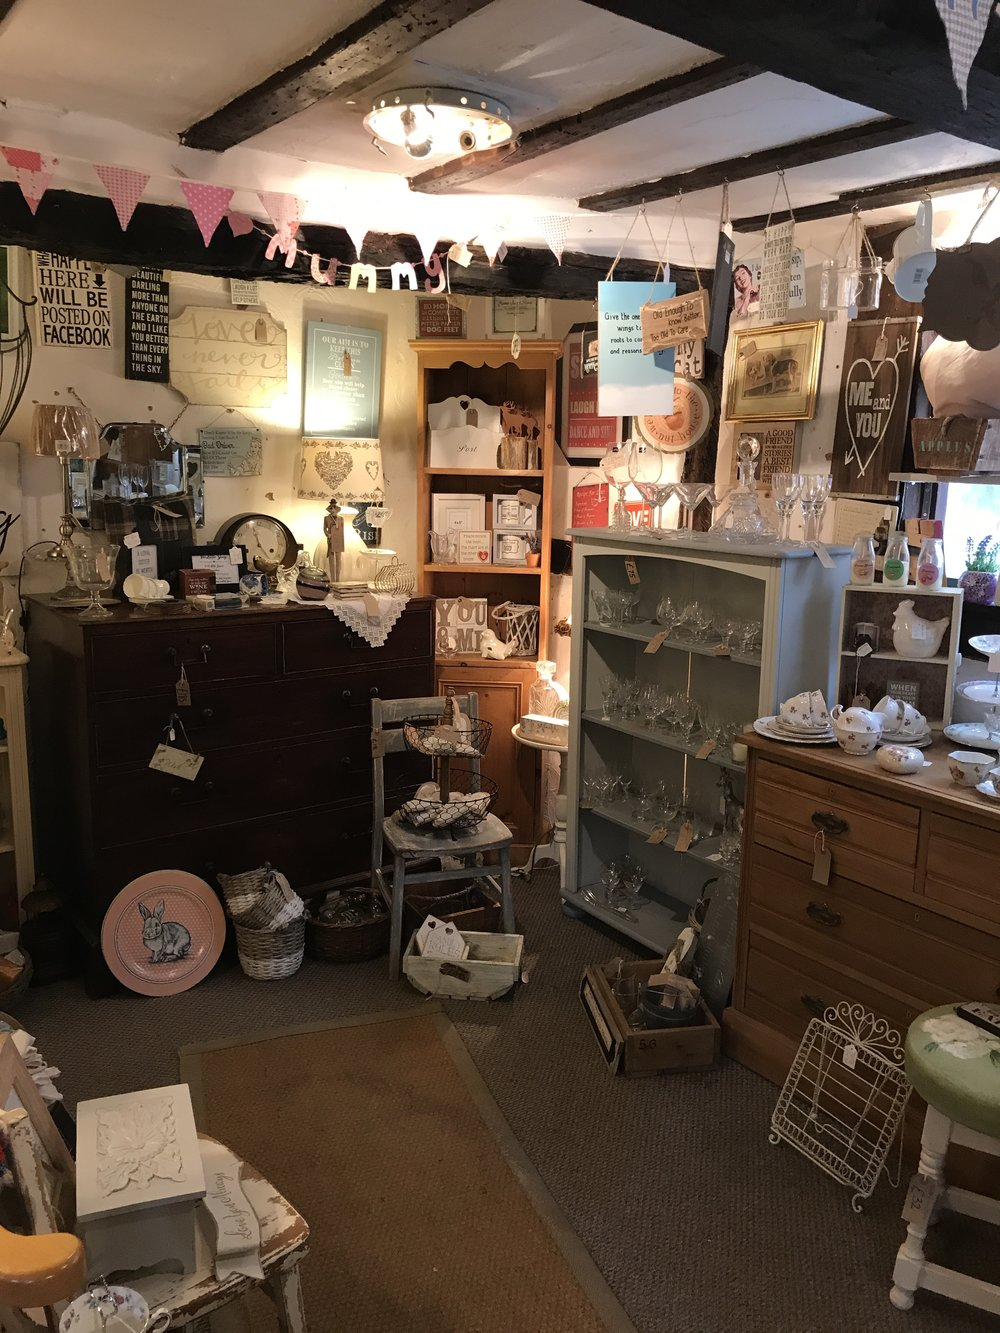 More of the little shop ...upstairs was very squashed.